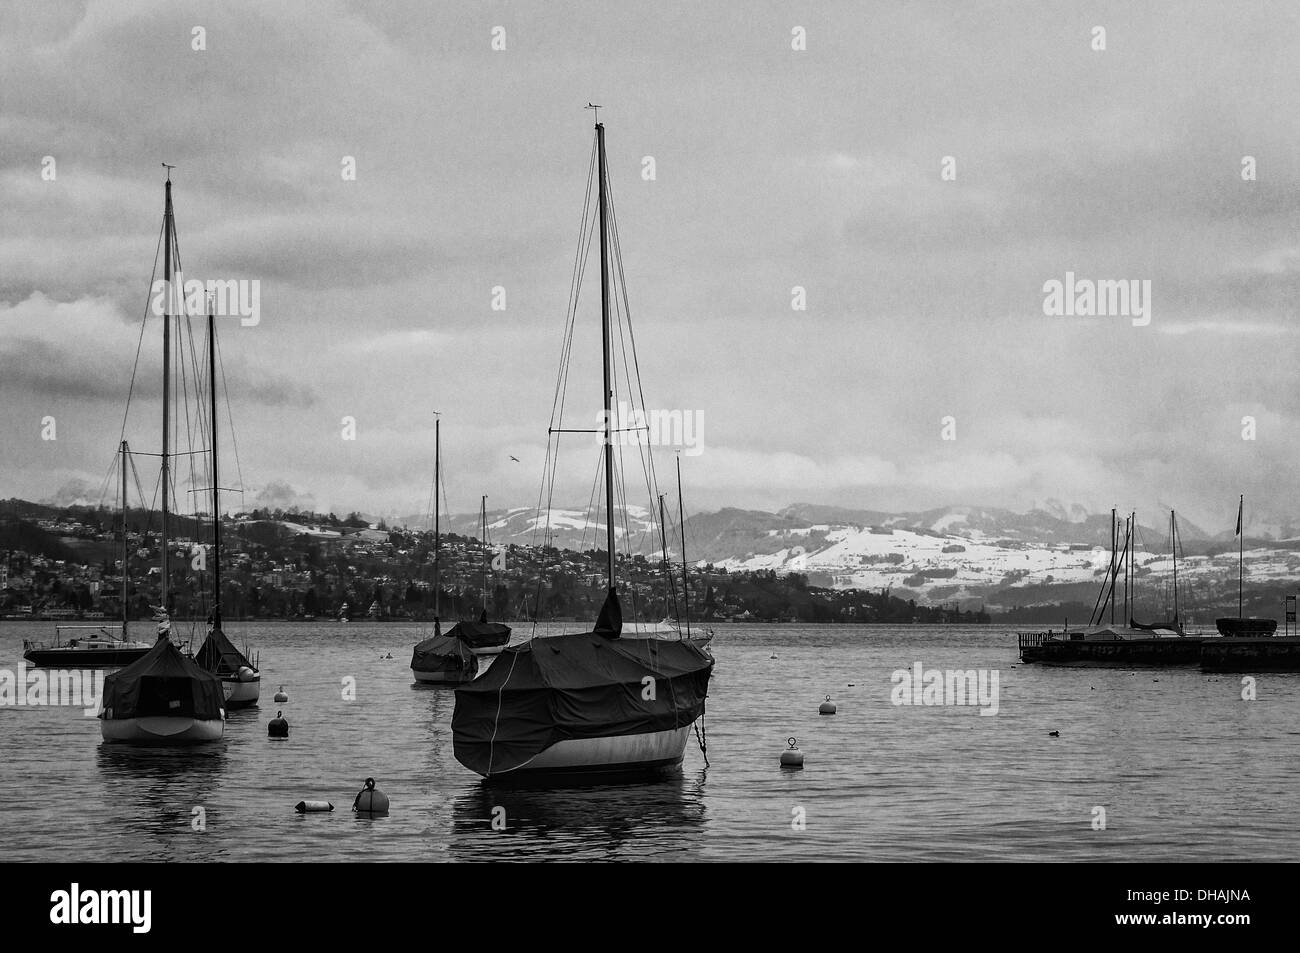 Sail boats on Zurich lake in a winter day. Black and White version. - Stock Image